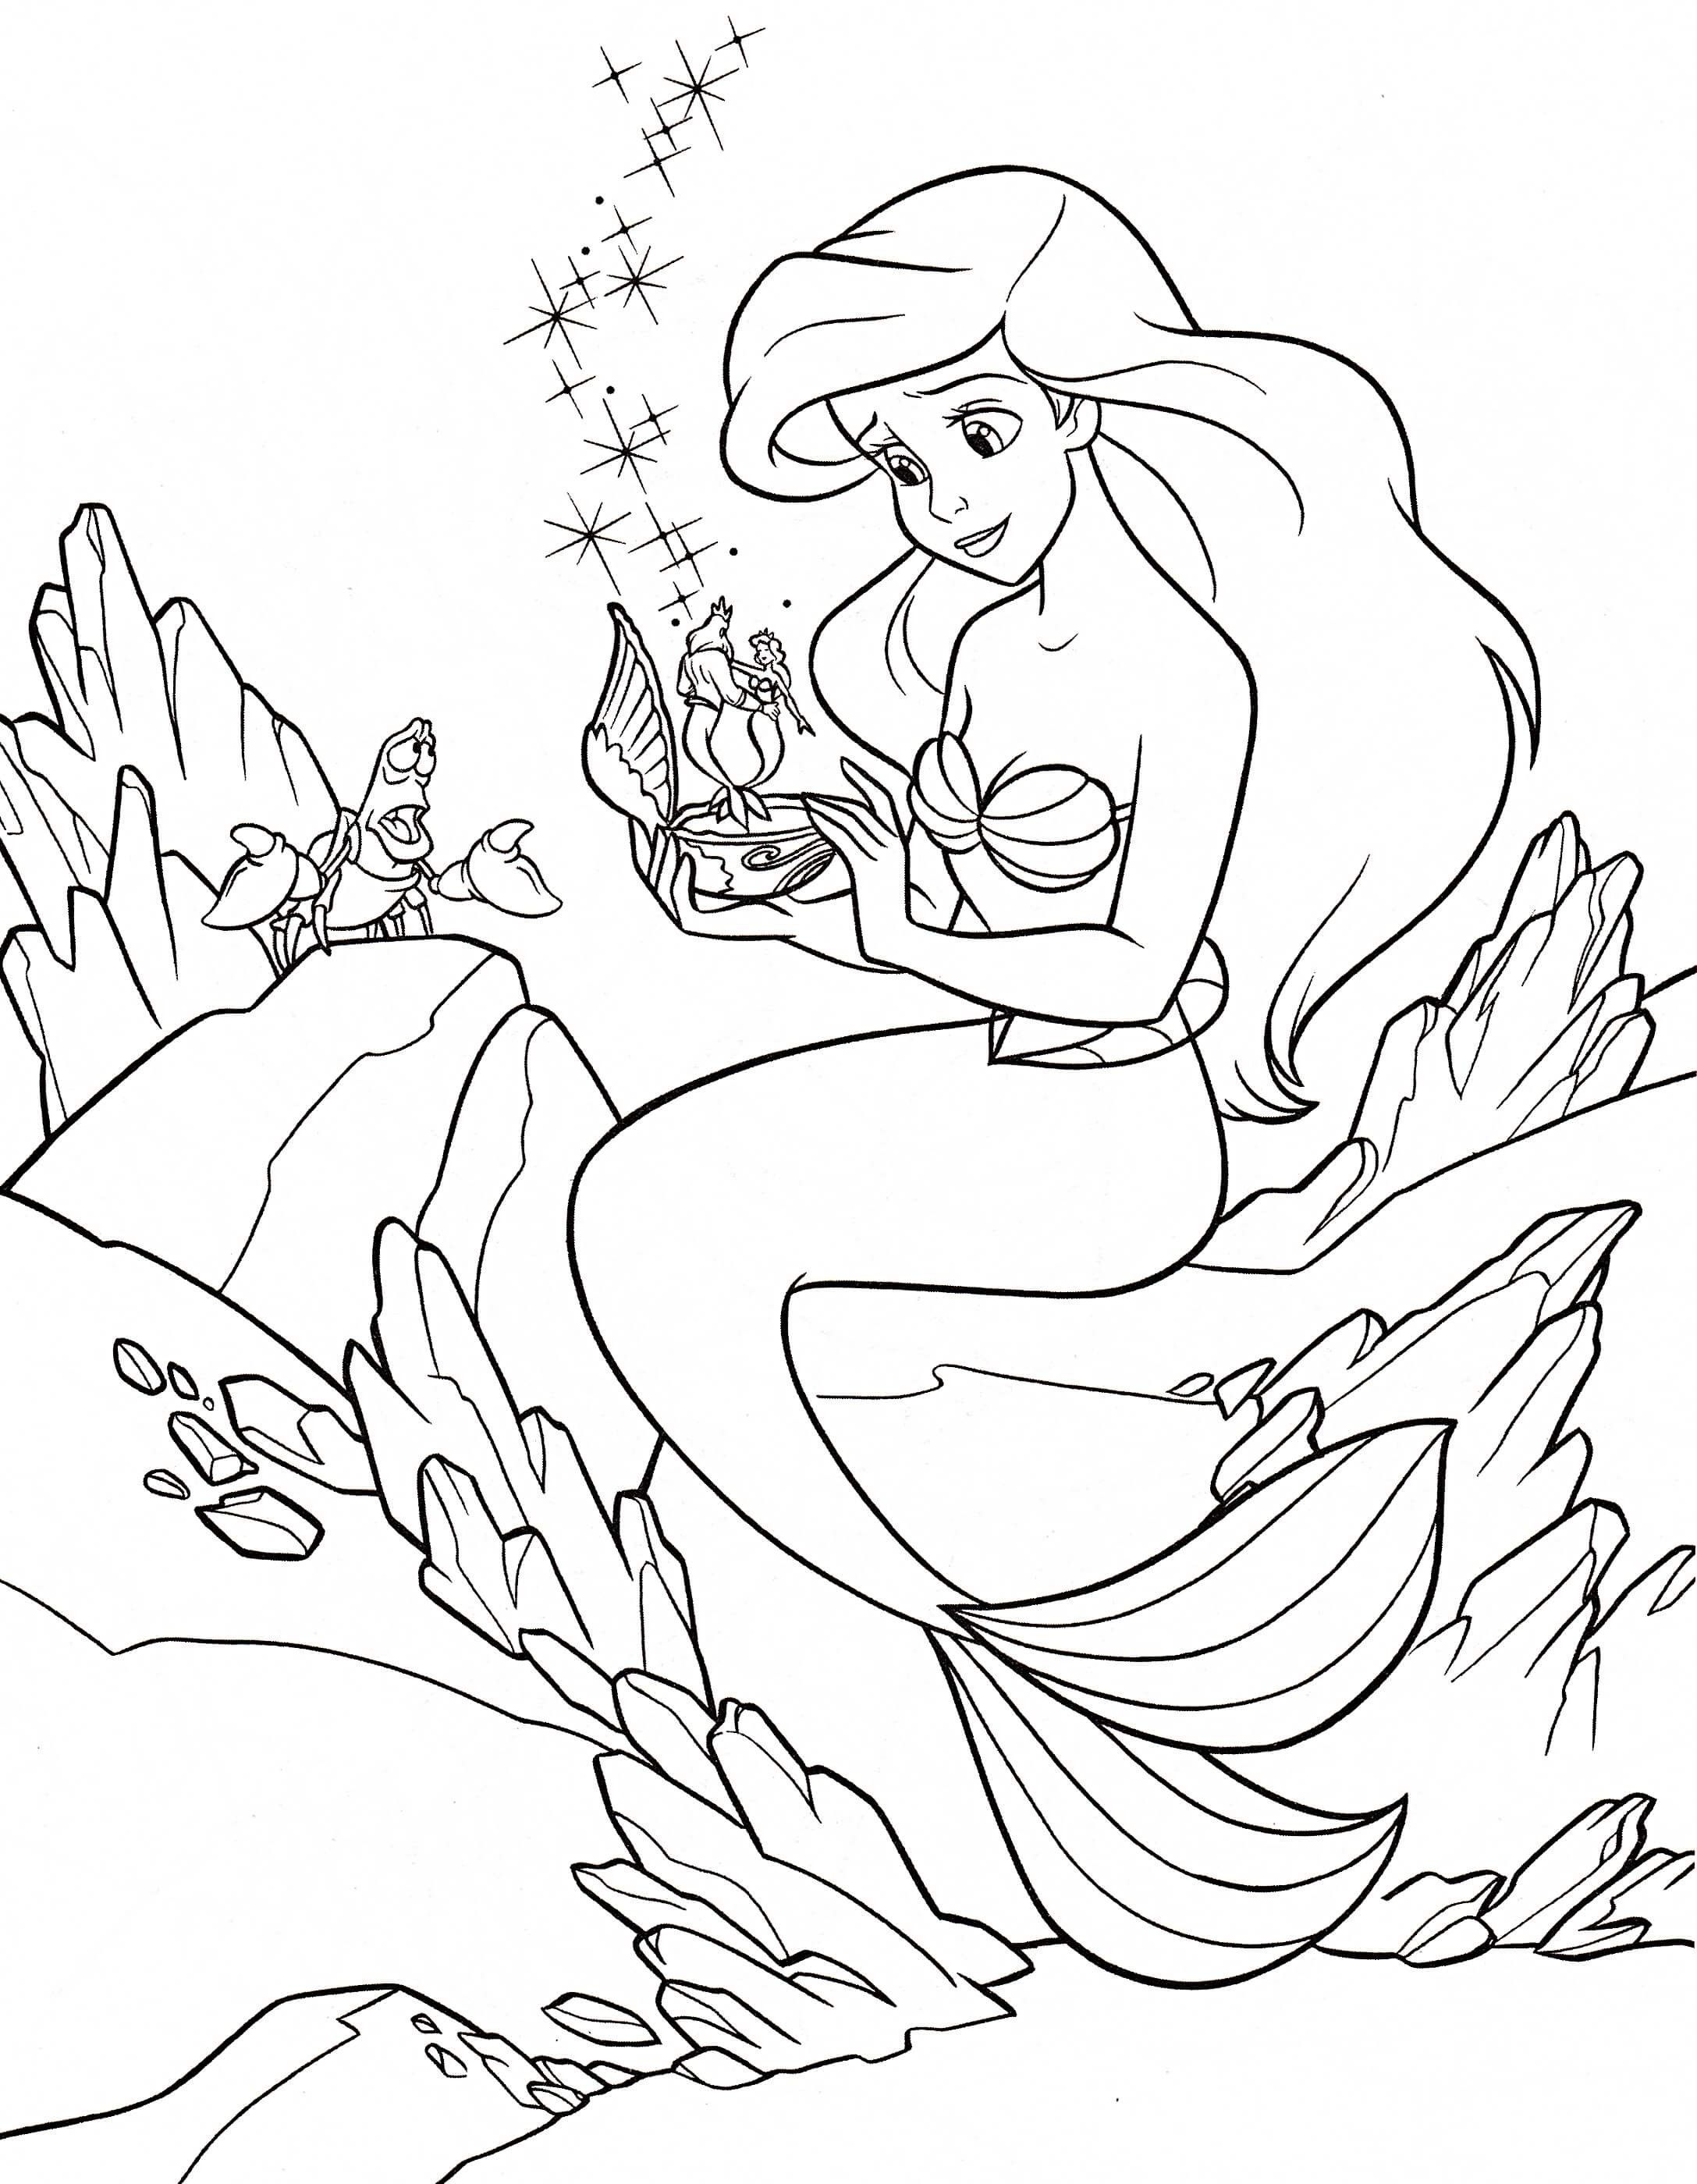 Princess Ariel Coloring Page Pdf From the thousands of